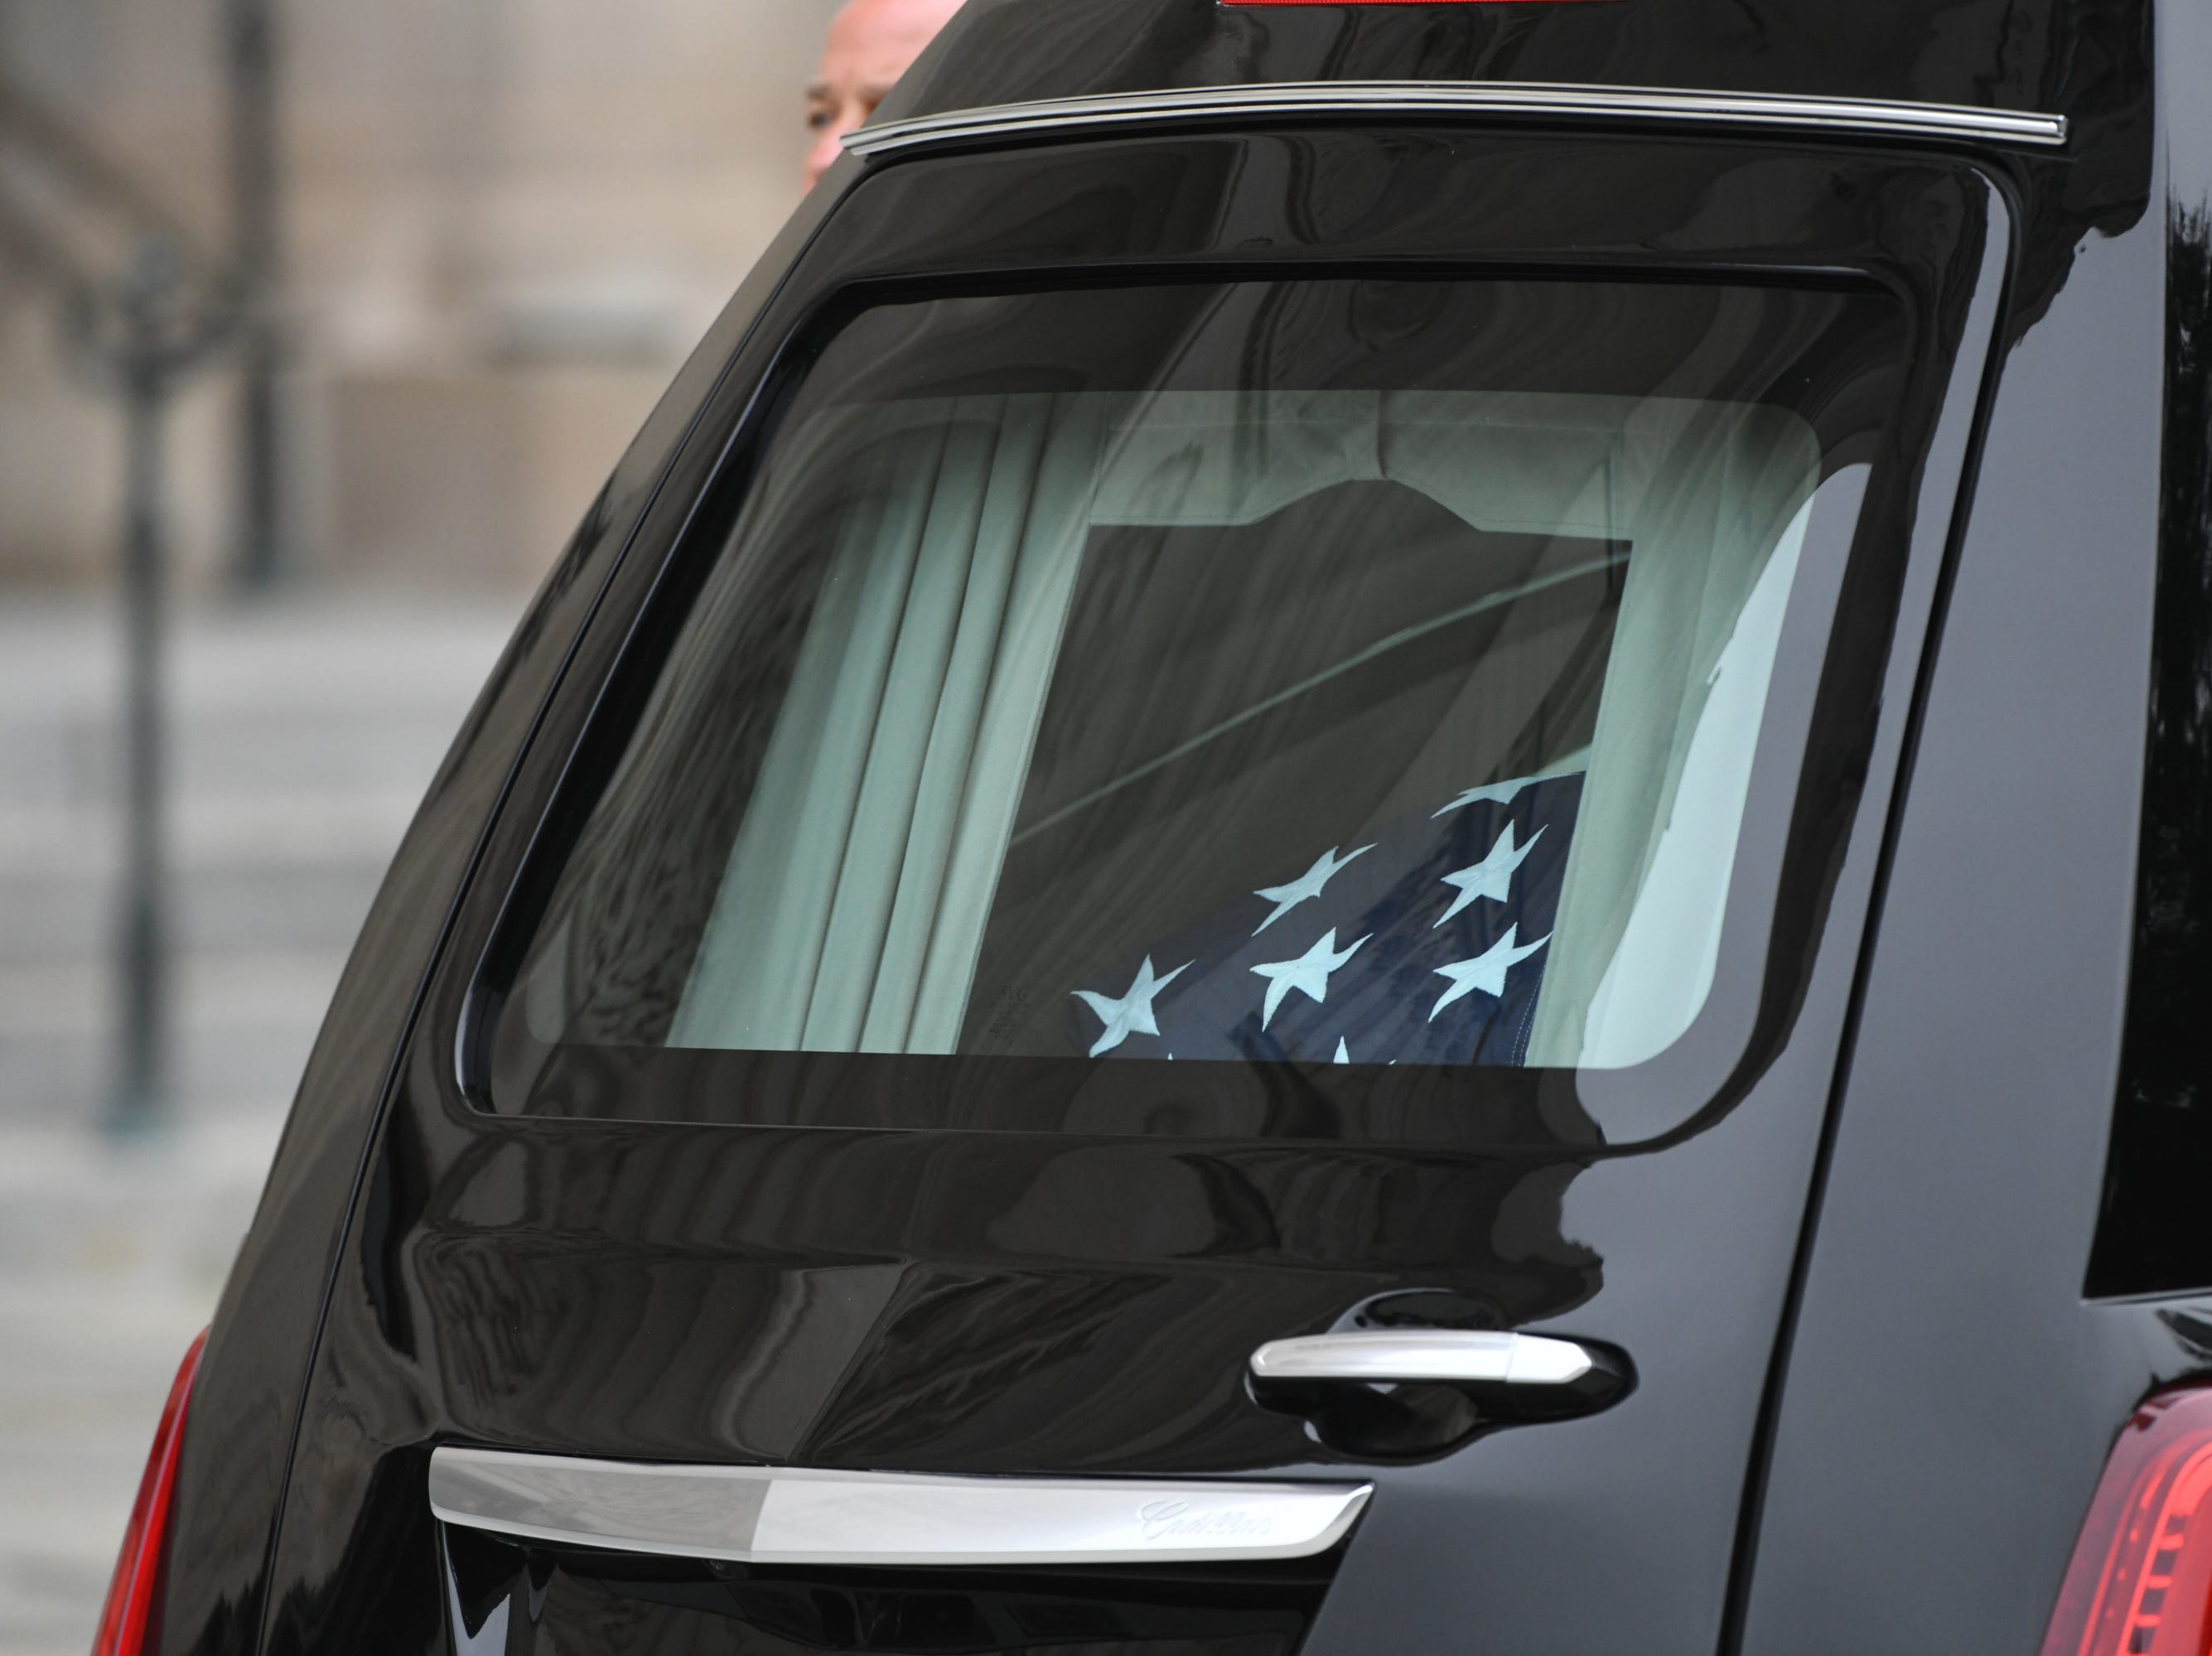 9/1/18 9:28:17 AM -- Washington, DC, U.S.A  -- The flag-draped casket bearing John McCain arrives into the National Cathedral in Washington for a memorial service on Sept. 1, 2018. Sen. McCain died on Aug. 25. --    Photo by Jasper Colt, USA TODAY Staff